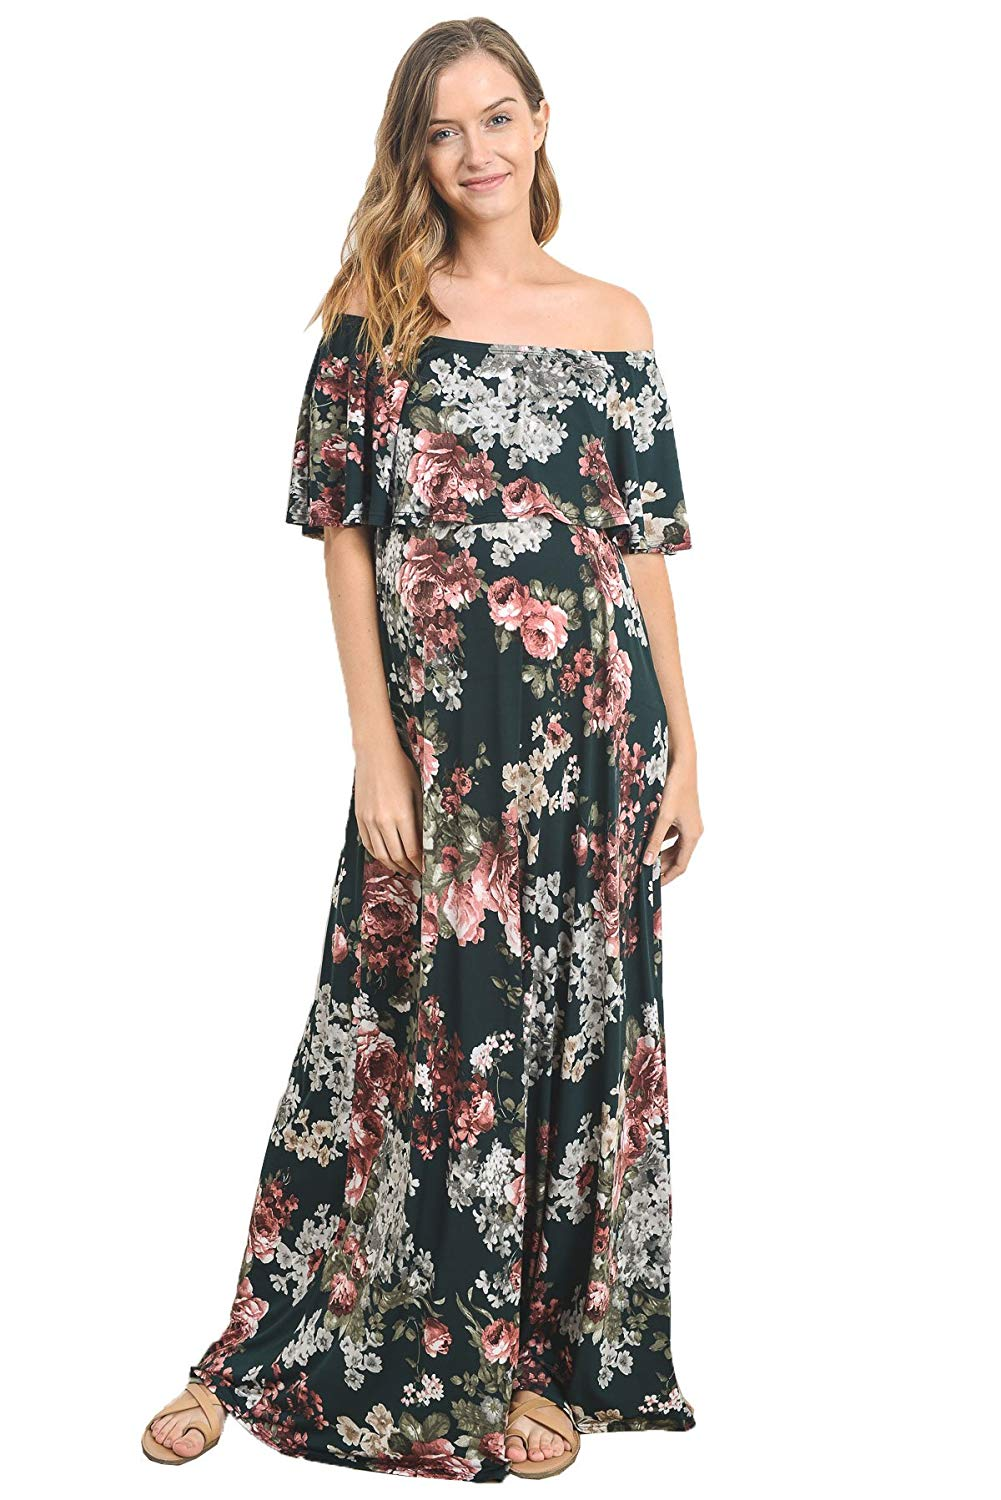 Green Floral Maternity Maxi Dress